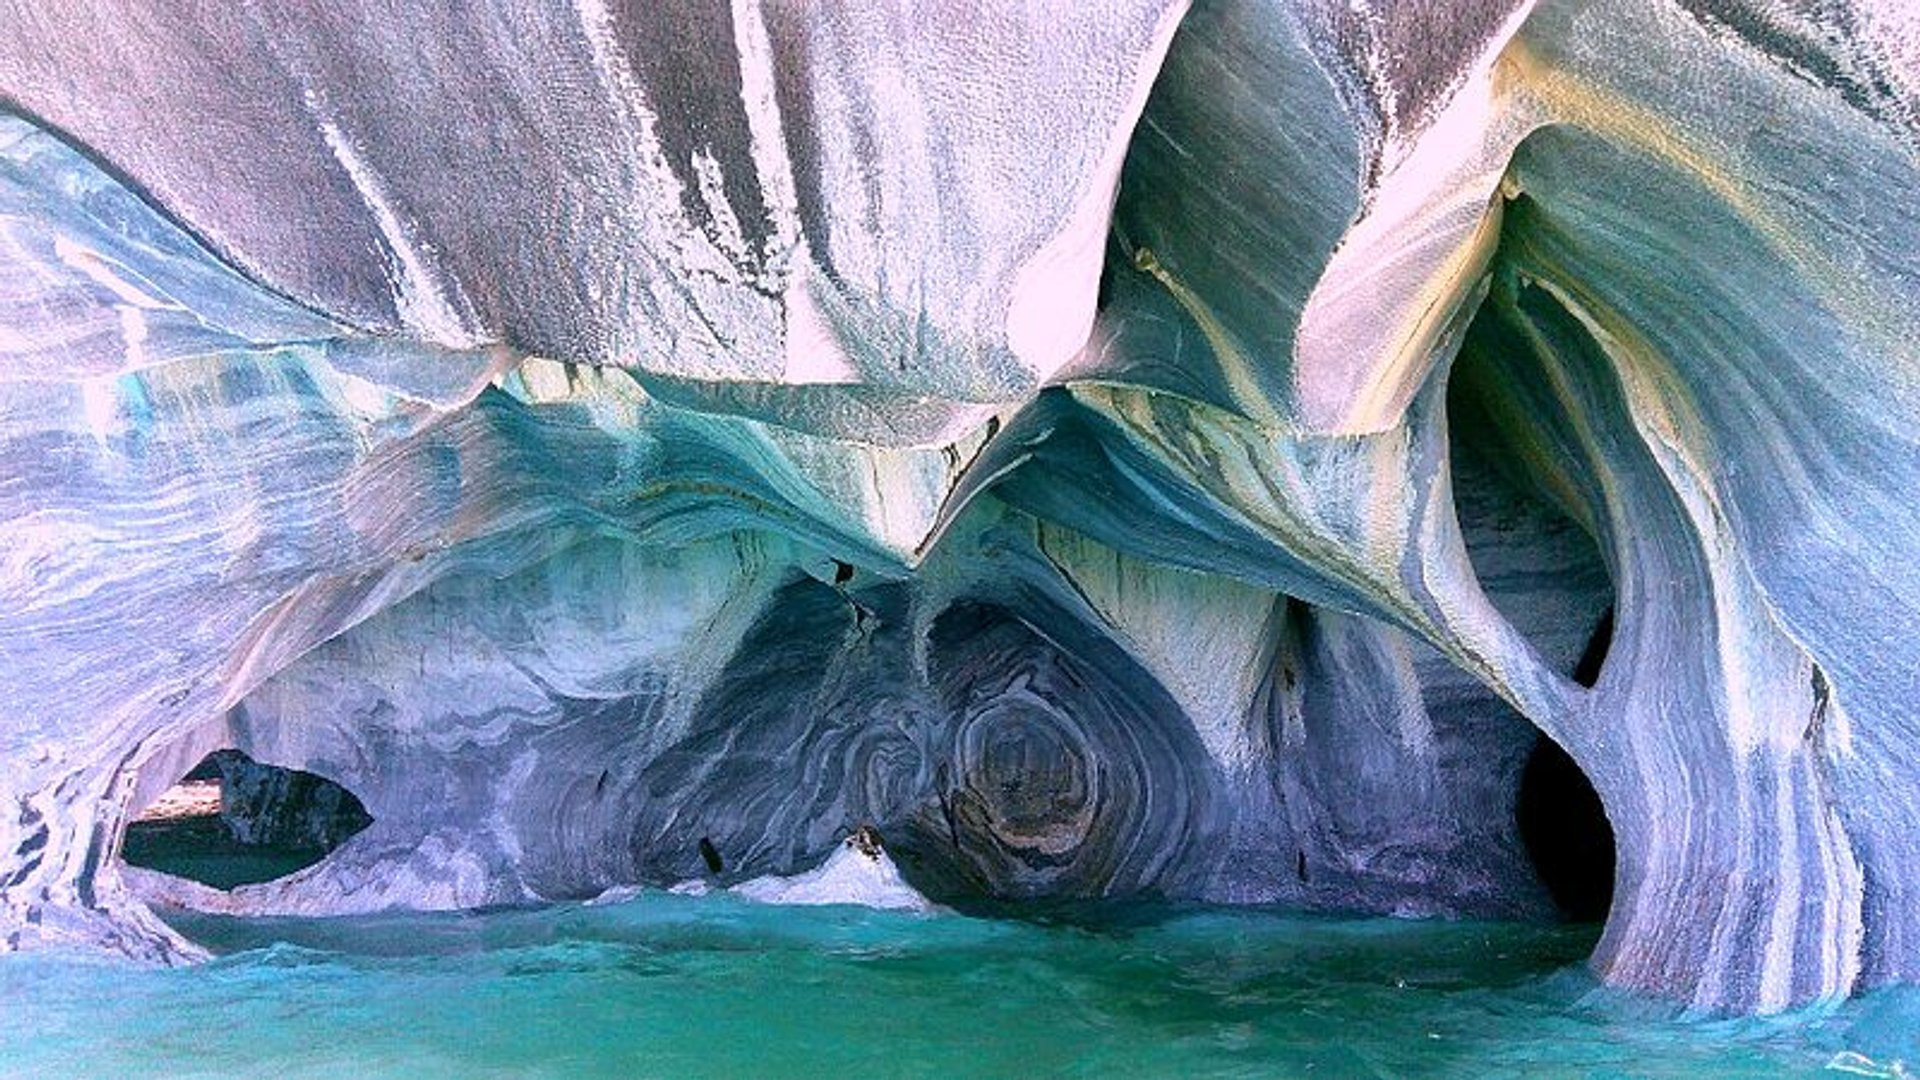 Best time for Marble Caves or Cuevas de Mármol in Chile